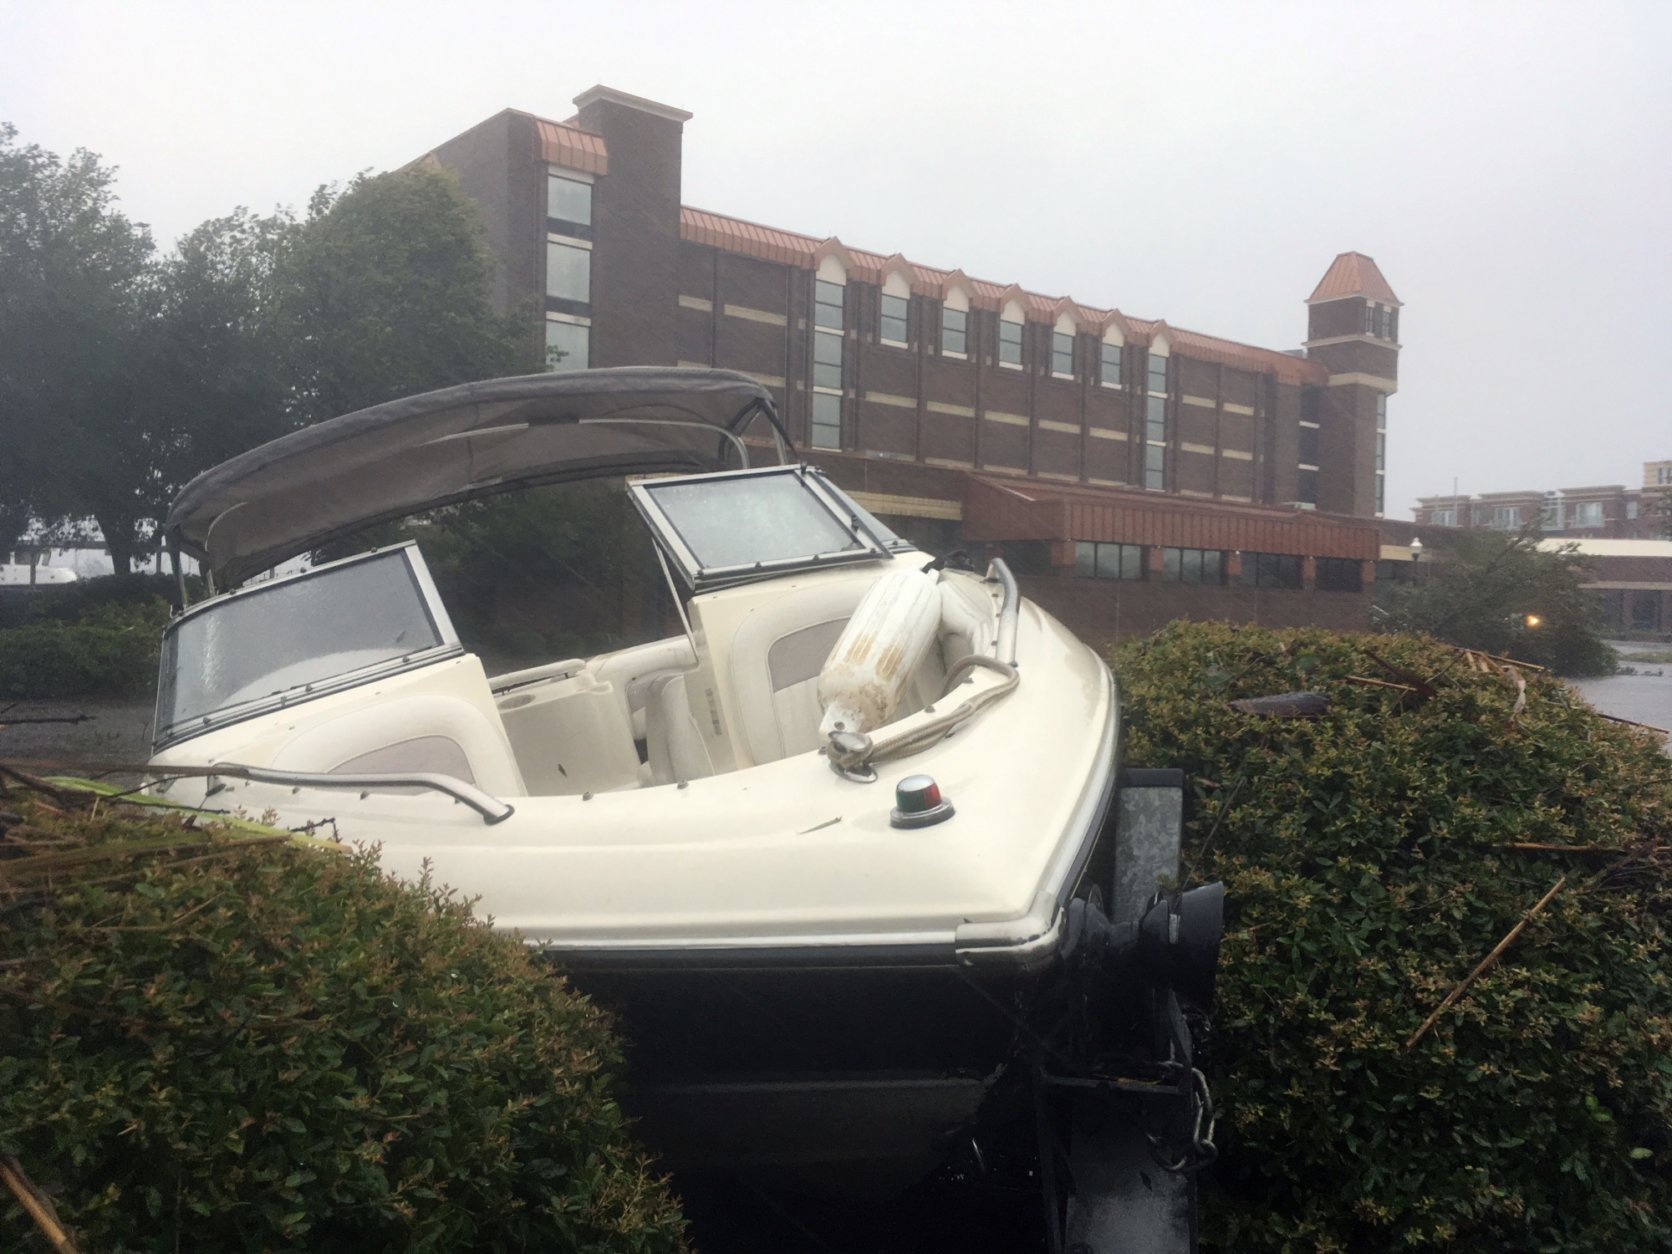 A speed boat sits wedged in bushes in the parking lot of a waterfront hotel in New Bern, N.C., on Friday, Sept. 14, 2018. Winds and rains from Hurricane Florence caused the Neuse River to swell, swamping the coastal city. (AP Photo/Allen G. Breed)